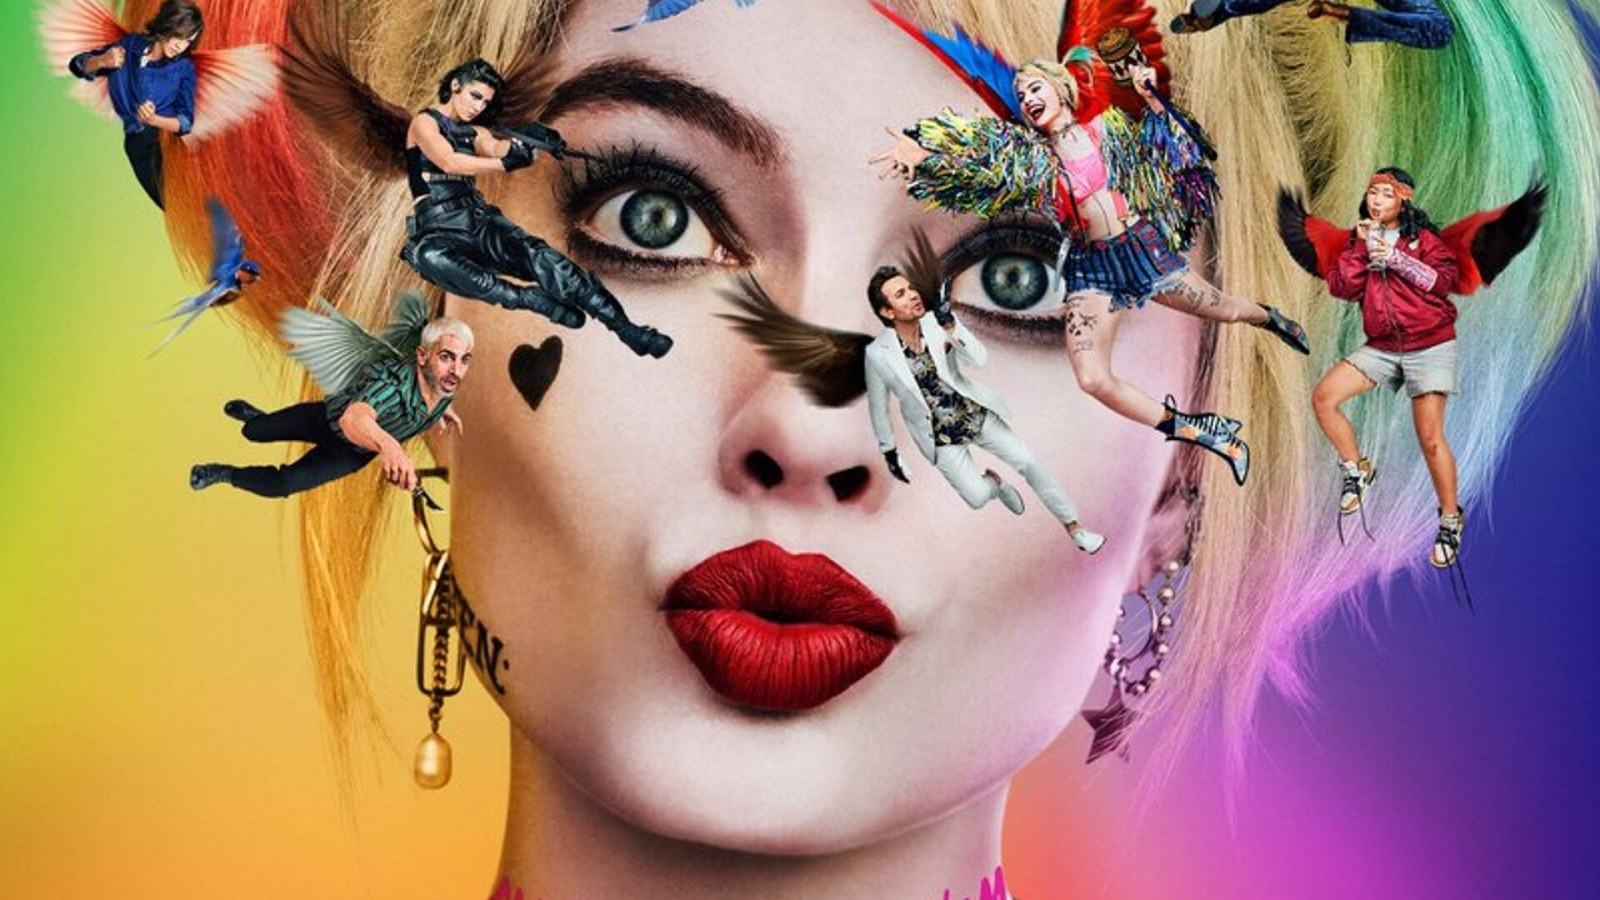 Birds Of Prey Reviews Round Up What Have Critics Said About The Margot Robbie Harley Quinn Movie